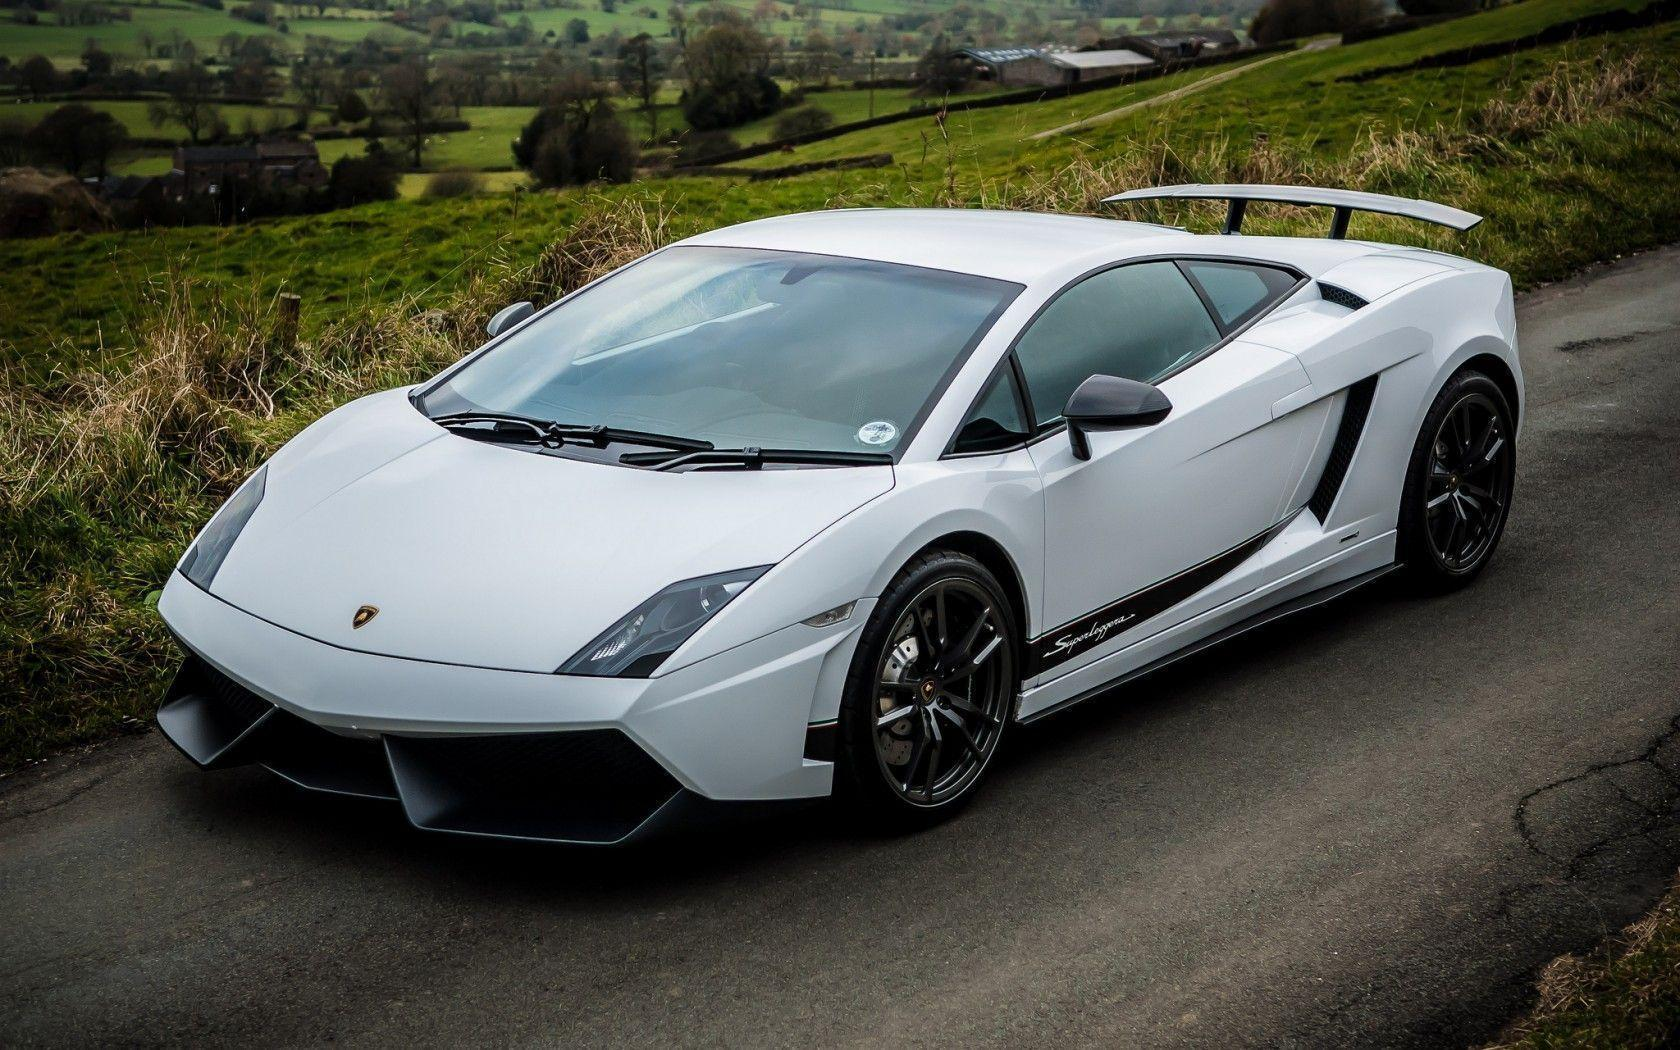 White Lamborghini Gallardo Wallpapers - Wallpaper Cave